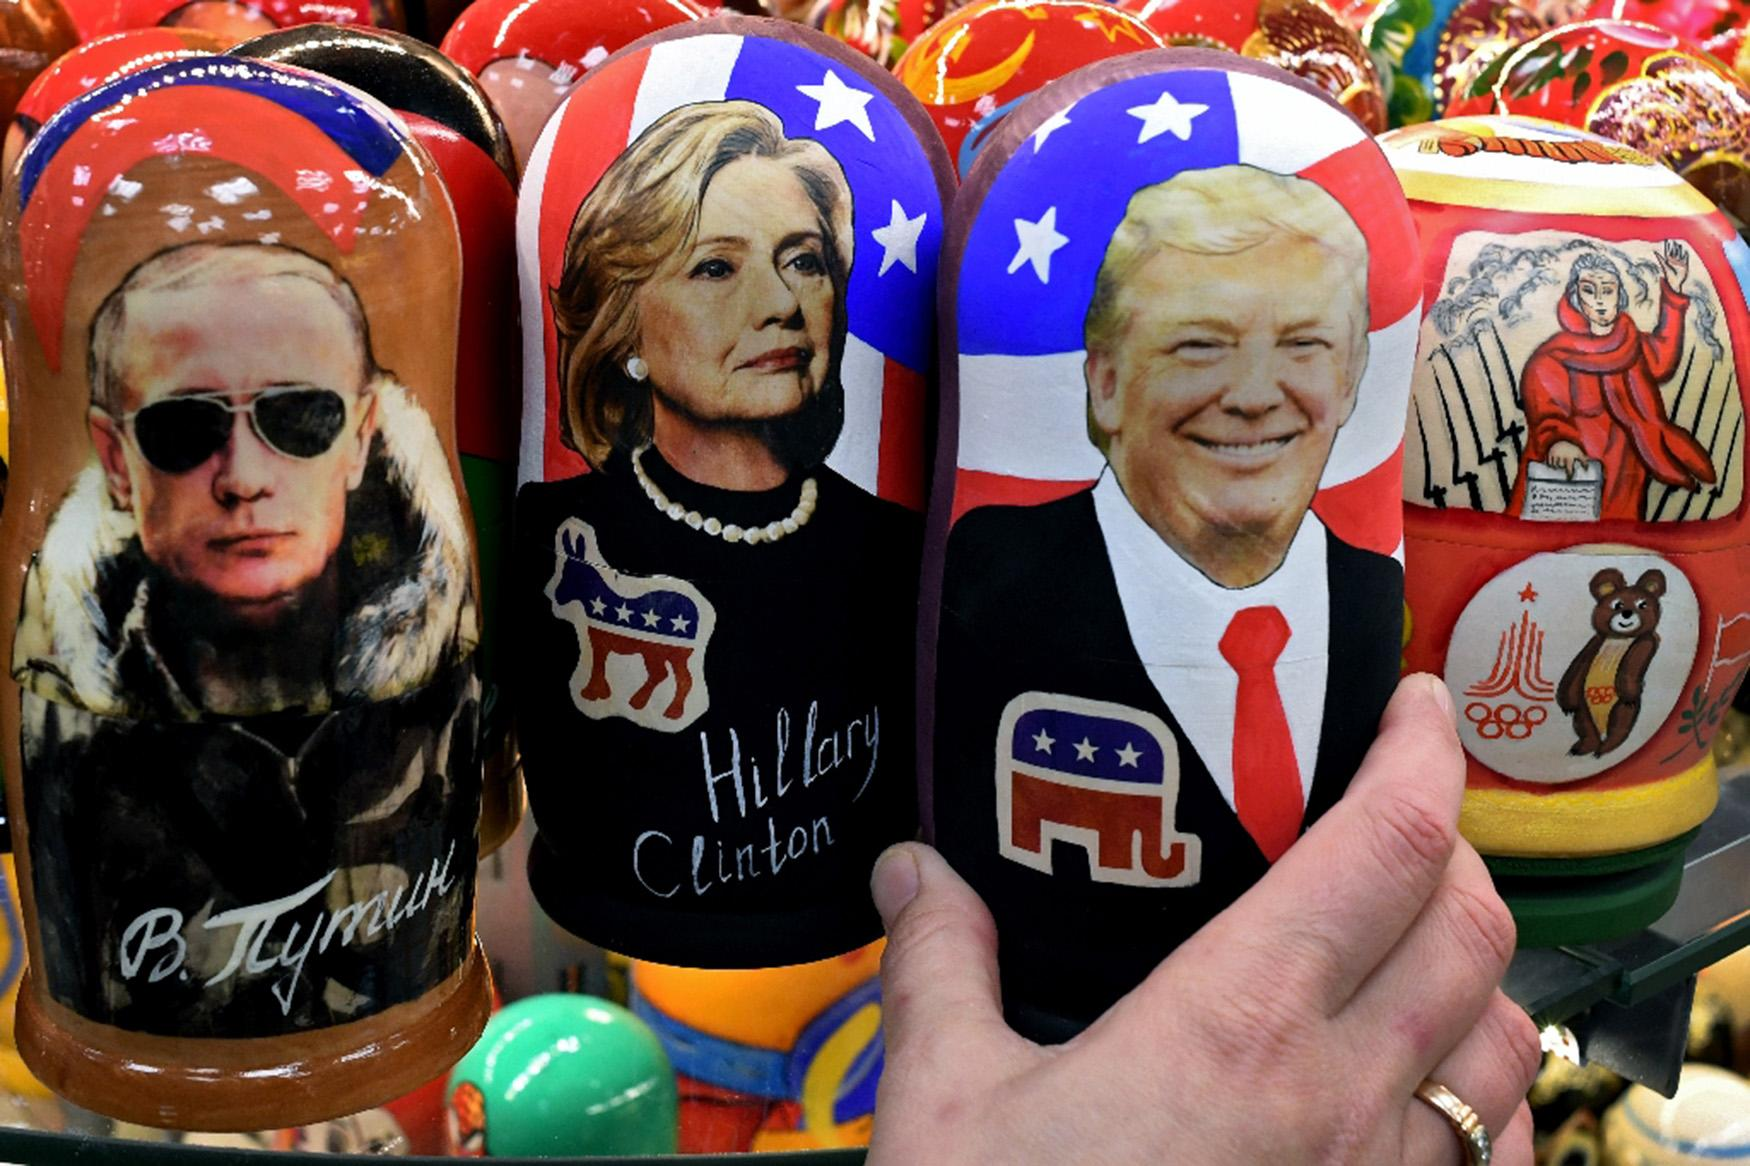 <p>Traditional Russian Matryoshka dolls in Moscow, depict (left to right) Russian President Vladimir Putin, Hillary Clinton and U.S. President- elect Donald Trump. (Kirill Kudryavtsev/AFP Photo) </p>